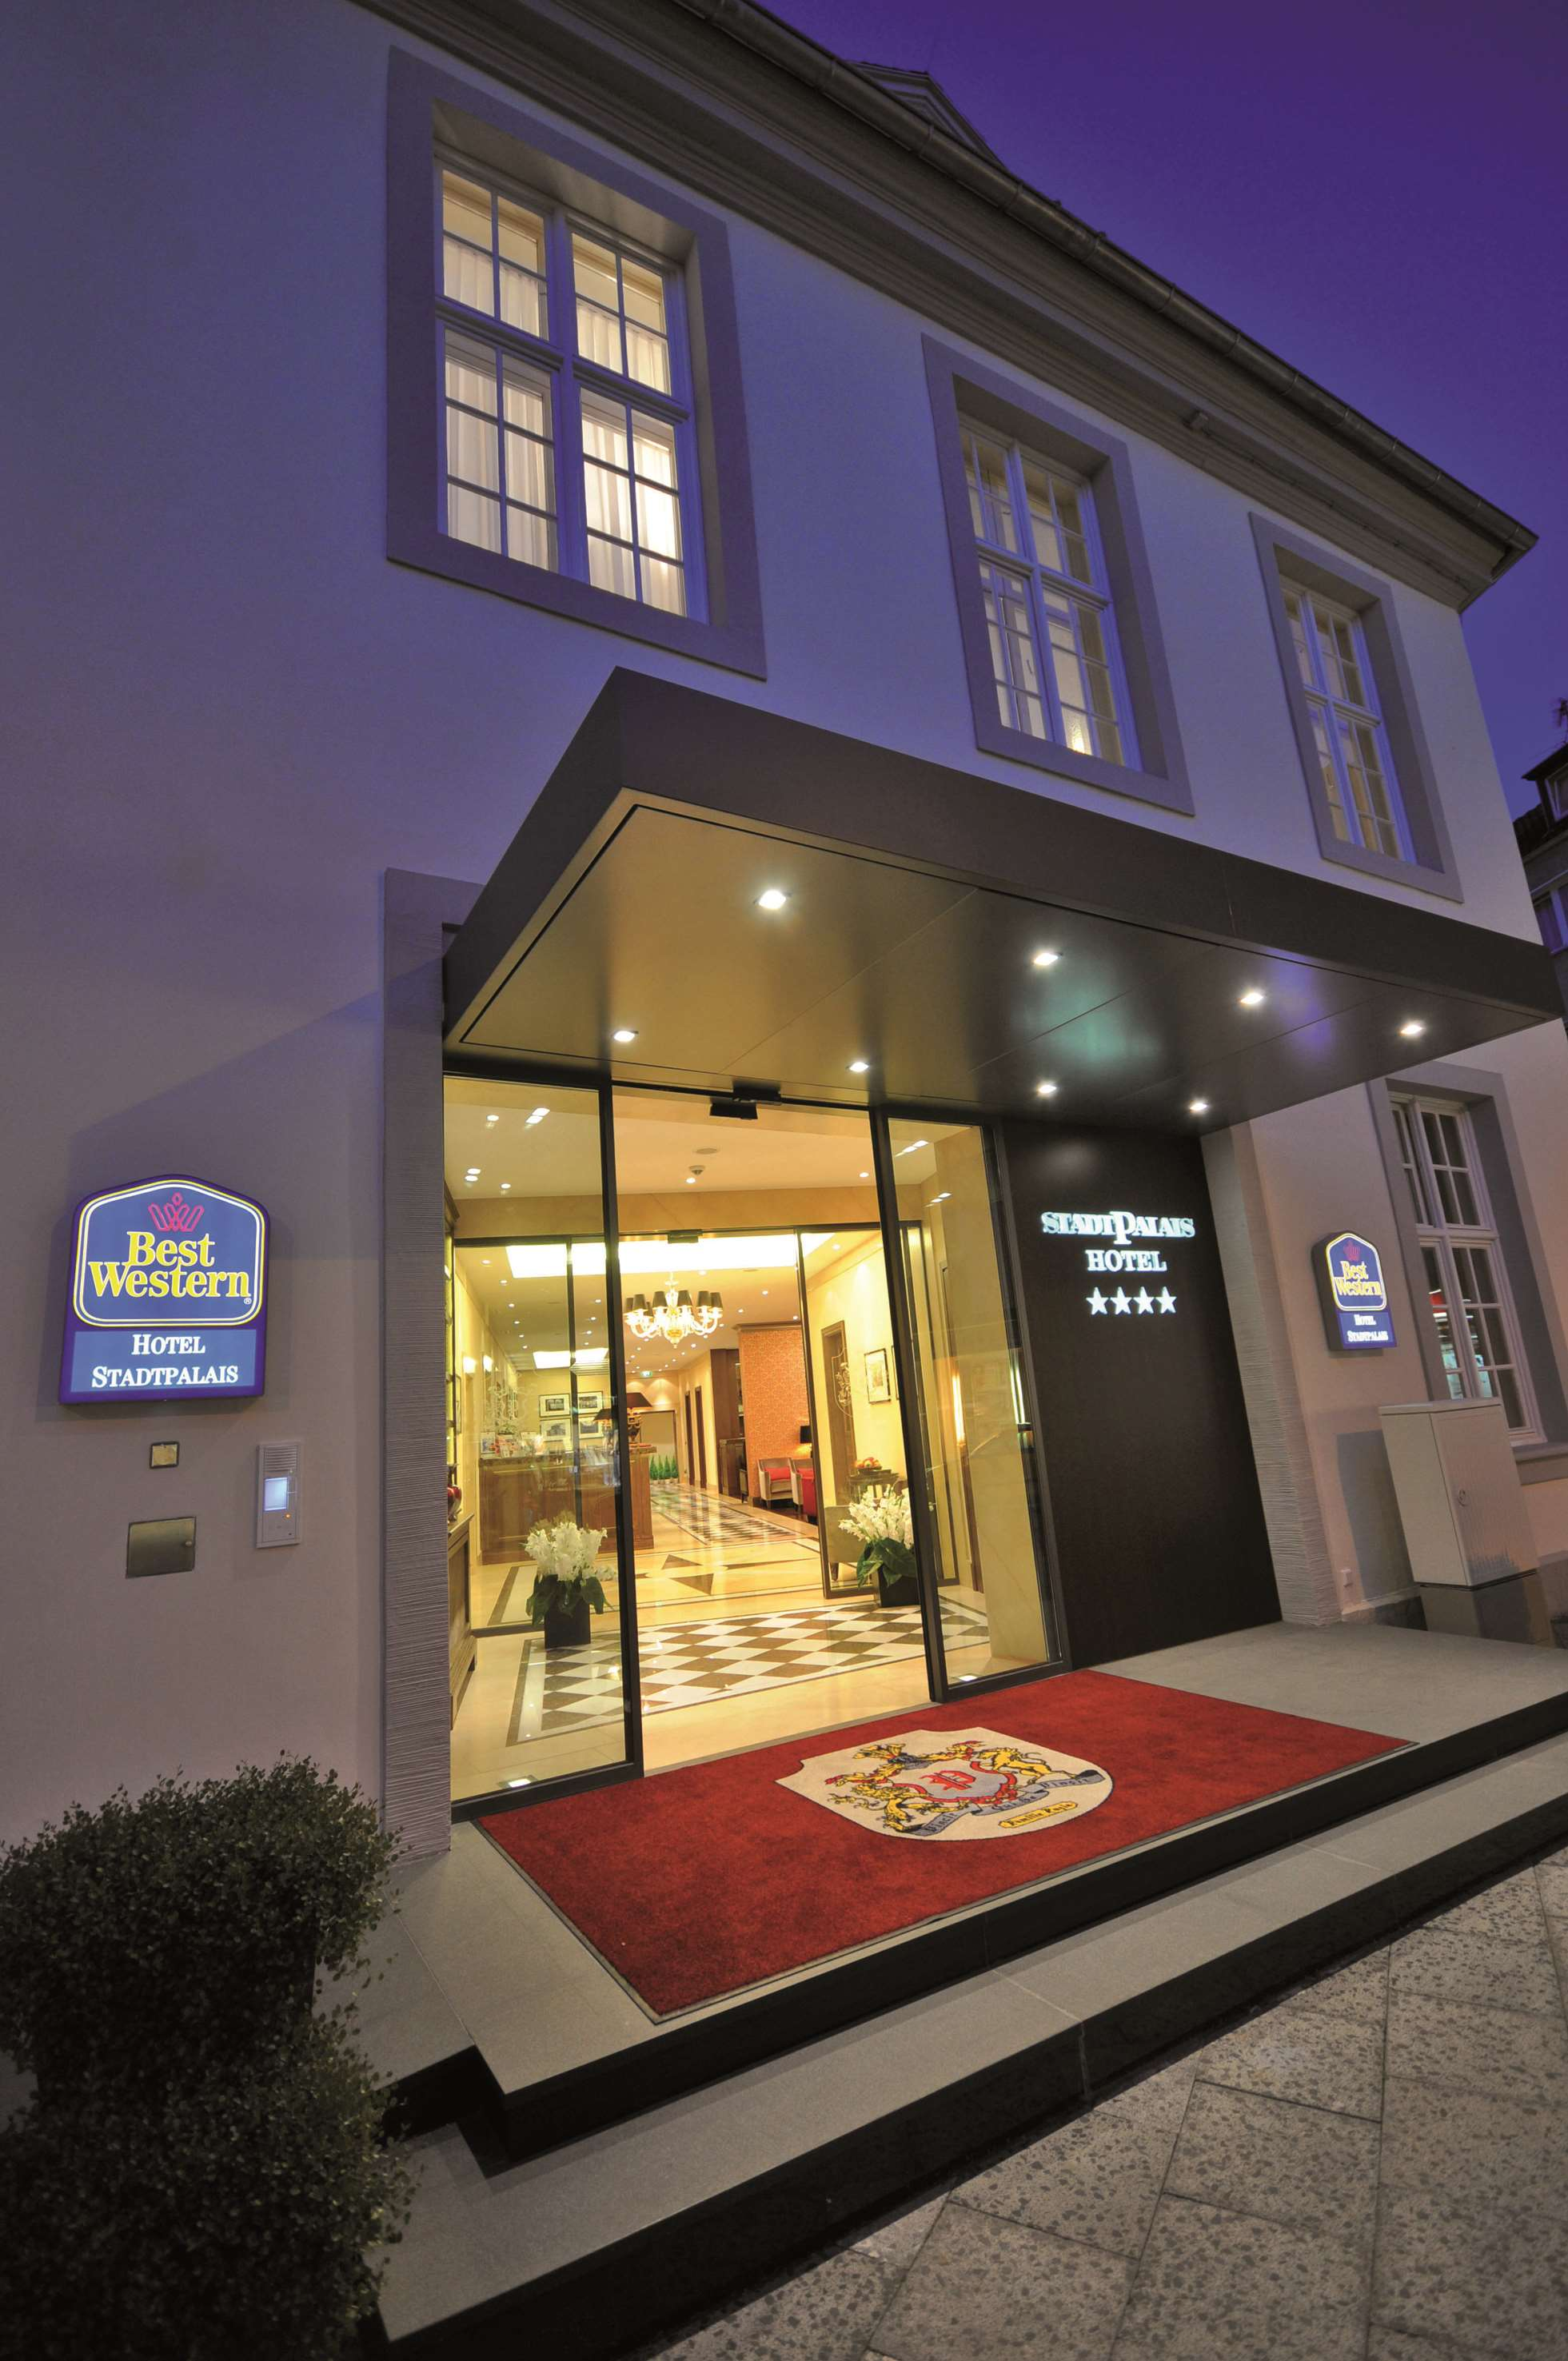 Best western plus hotel stadtpalais hotels hotels for Design hotel braunschweig